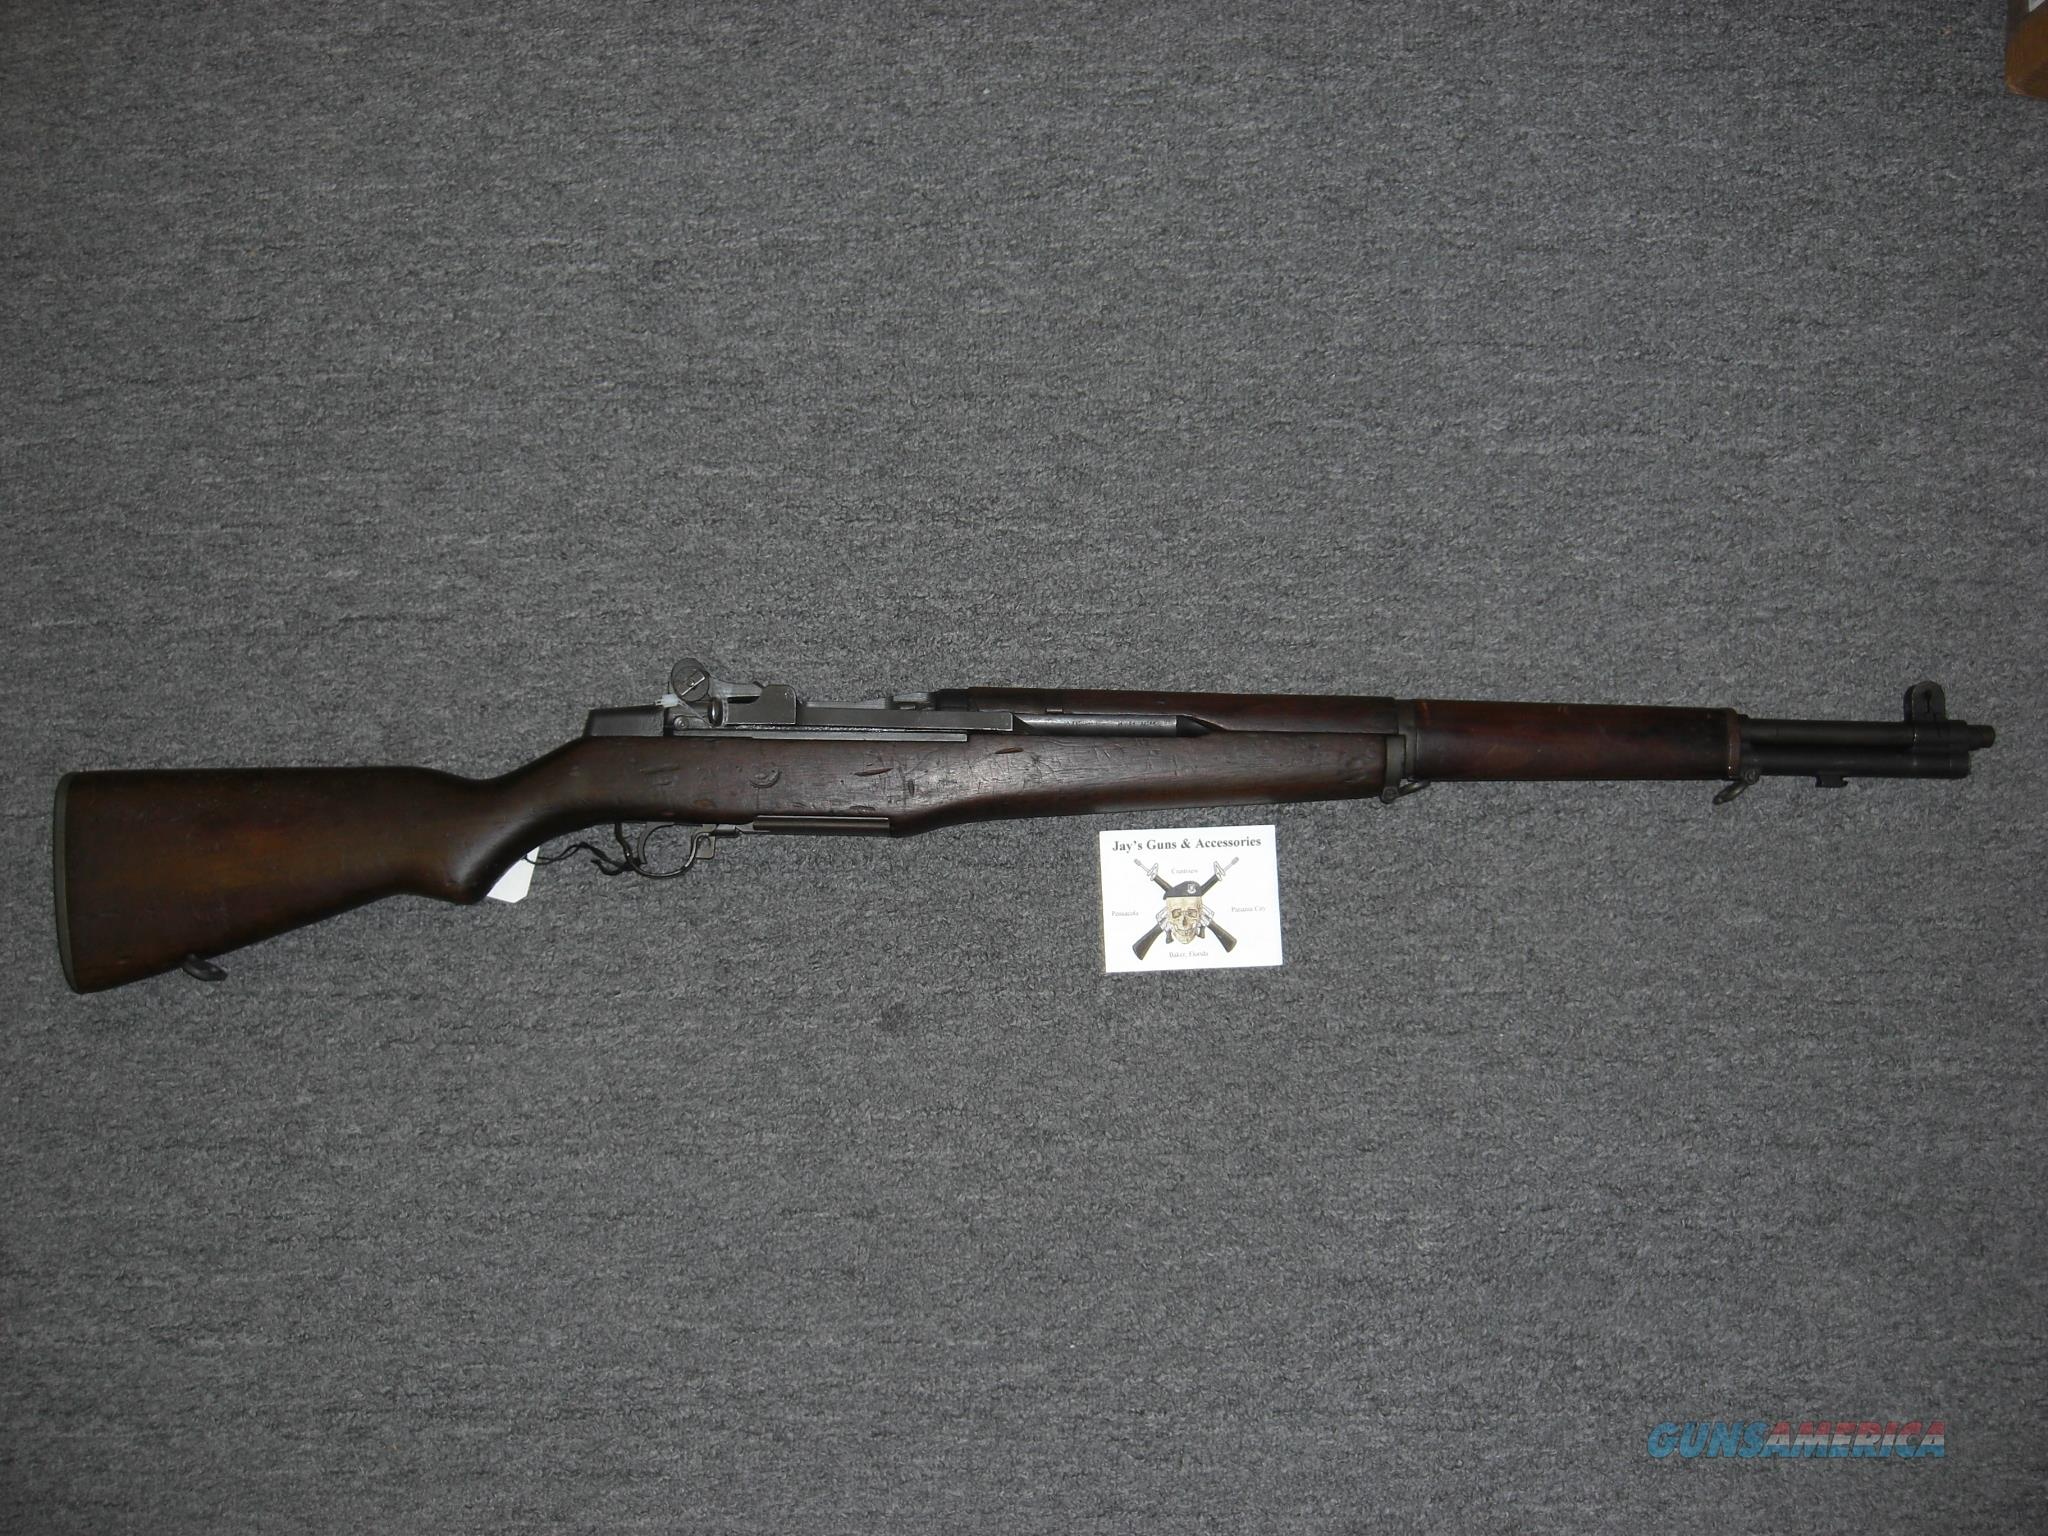 Dating an m1 garand barrel